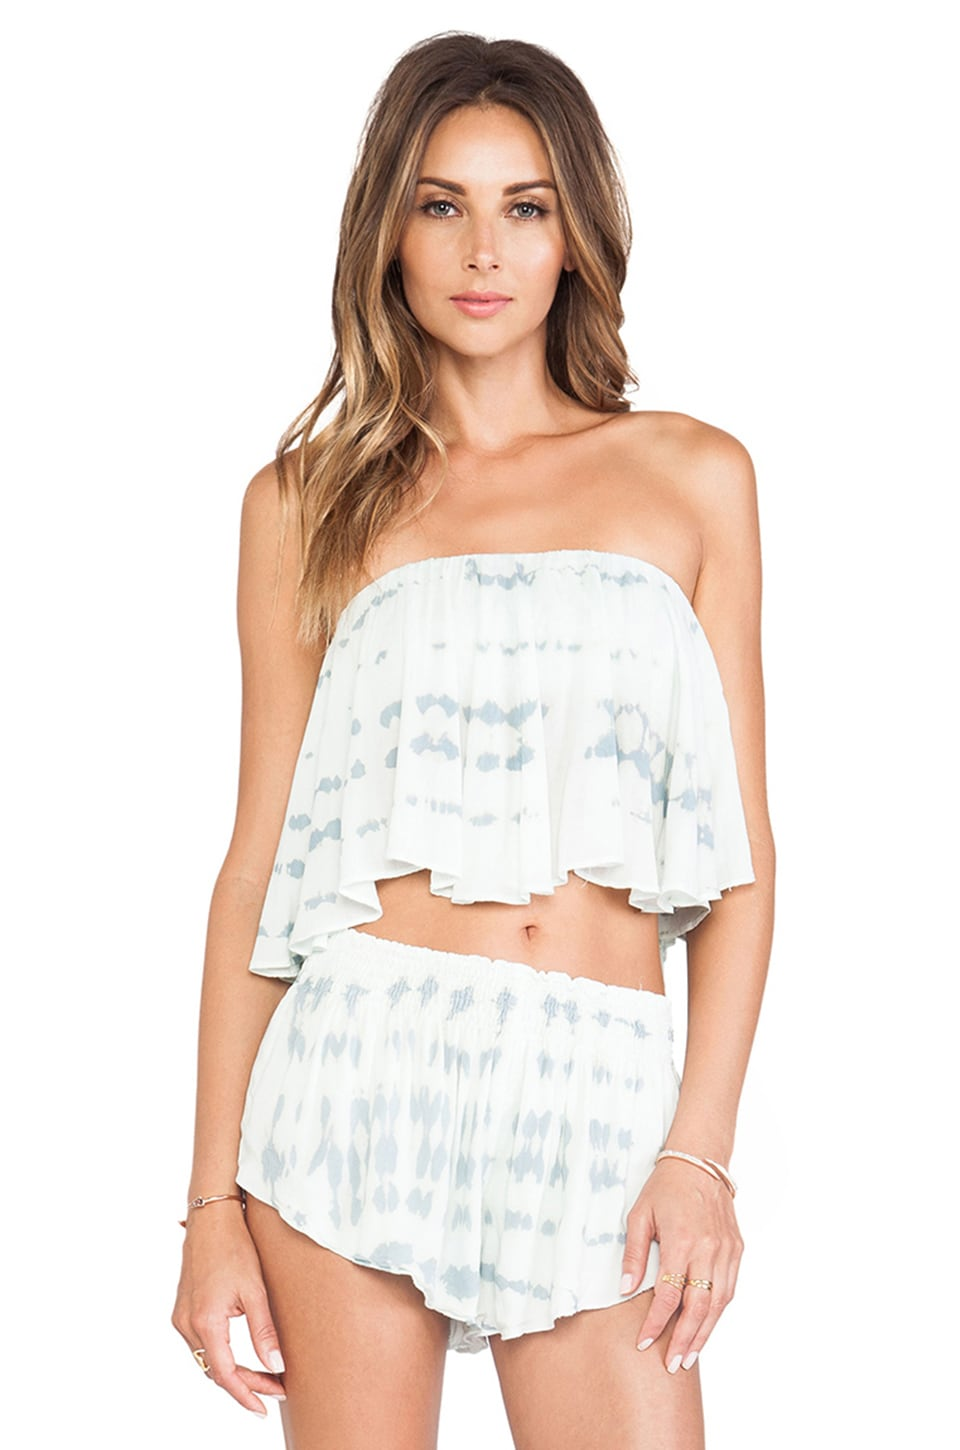 Blue Life Wildest Dreams Top in Light Blue & White